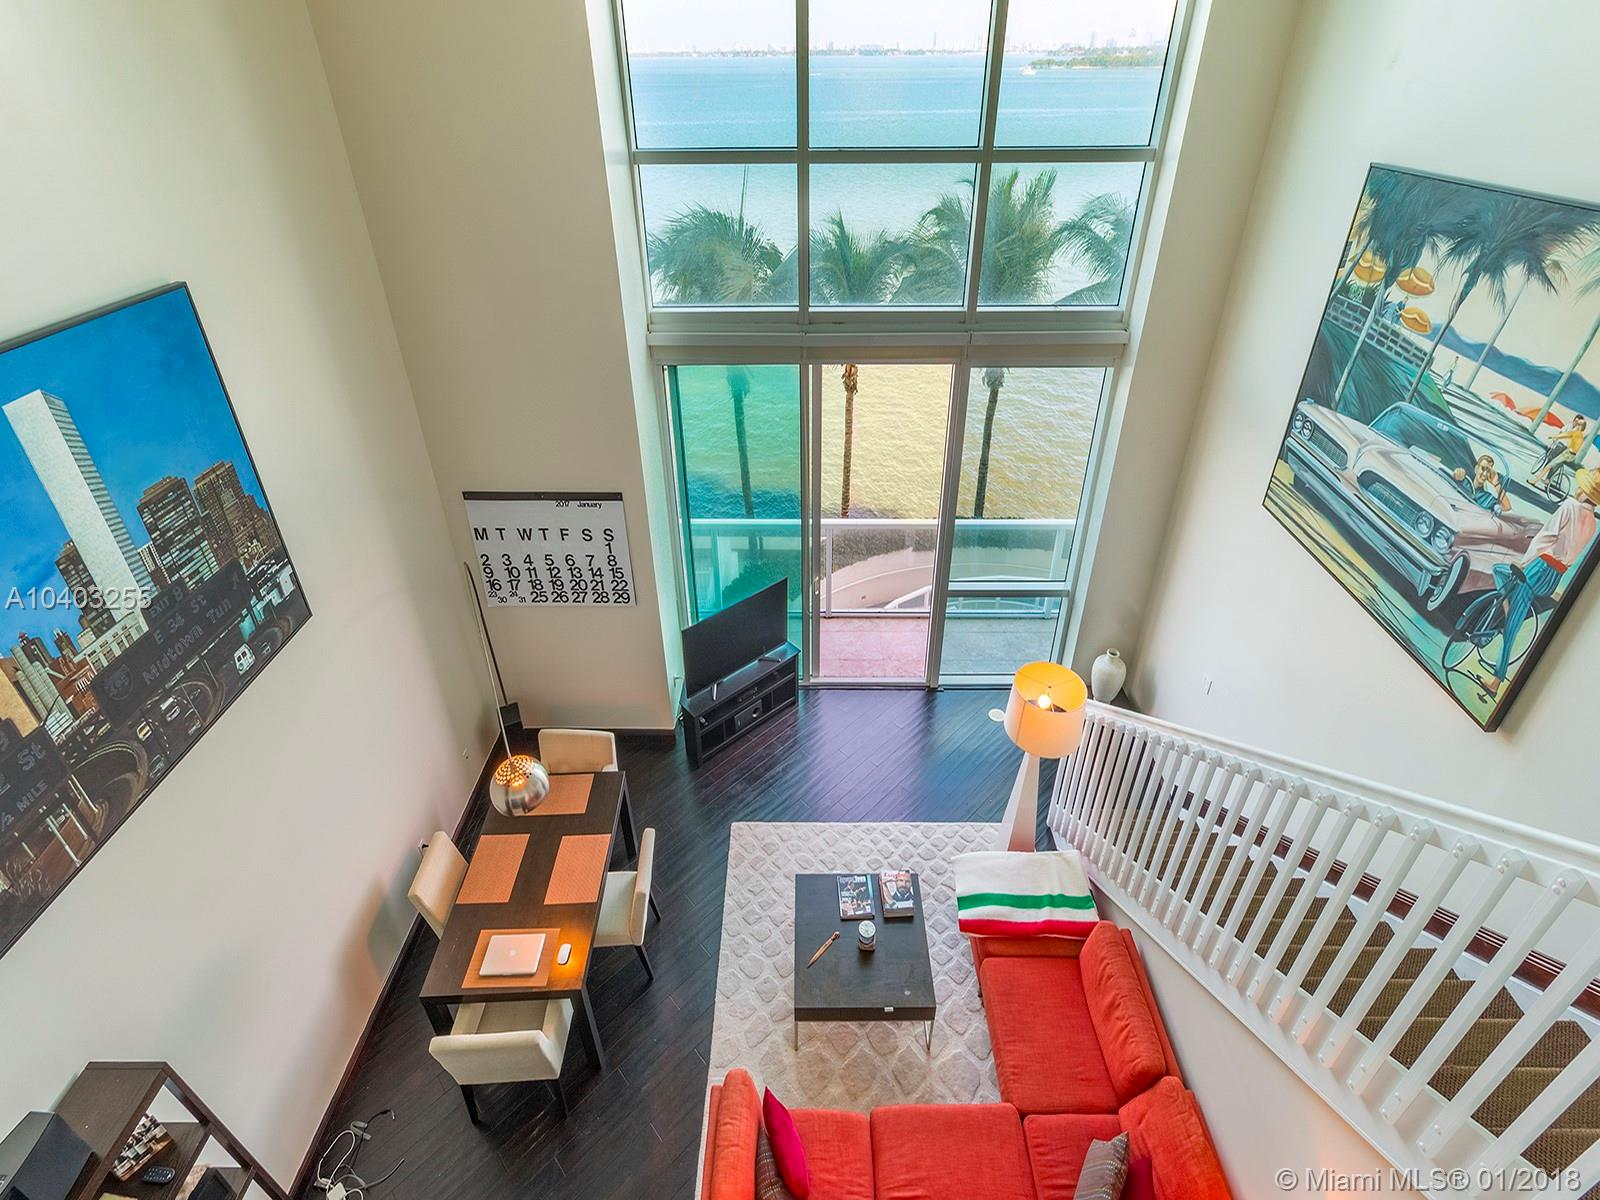 Two Story 1 Bedroom / 1.5 Bath Loft With Direct Bay Views At Onyx In Edgewater. Great Views From All Rooms With Tons Of Light All Day. Great Floorplan Including 20 Ceilings With The Kitchen And Large Living Room Downstairs And Master Bedroom Upstairs. 24 Hour Notice To Show.